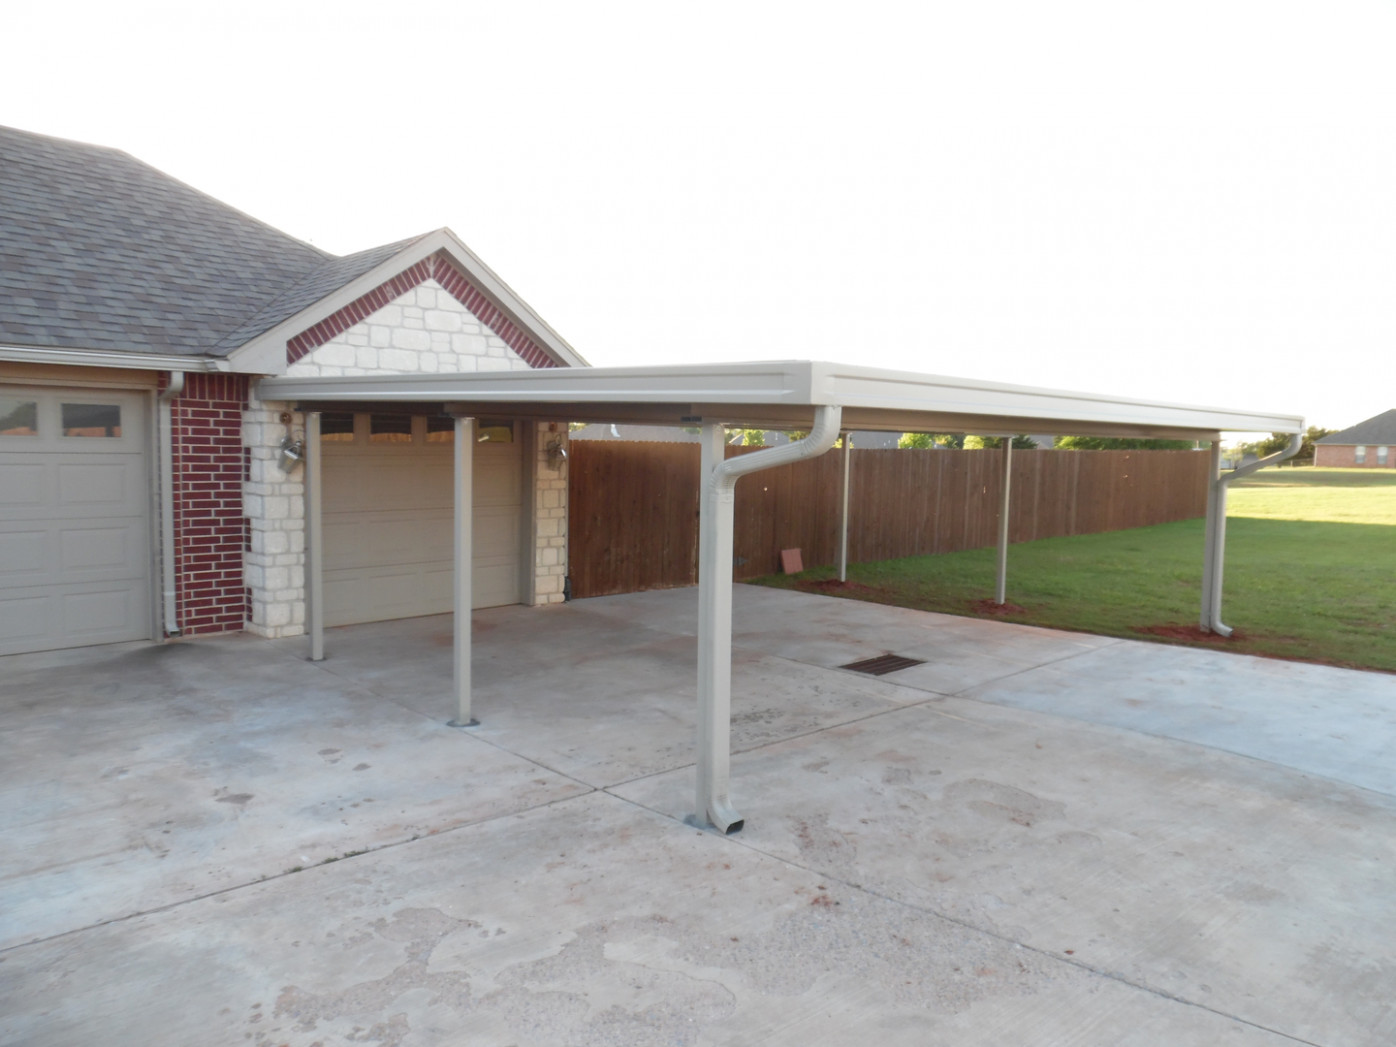 Carports Of Oklahoma Home Page Welcome Carport Canopy Wood